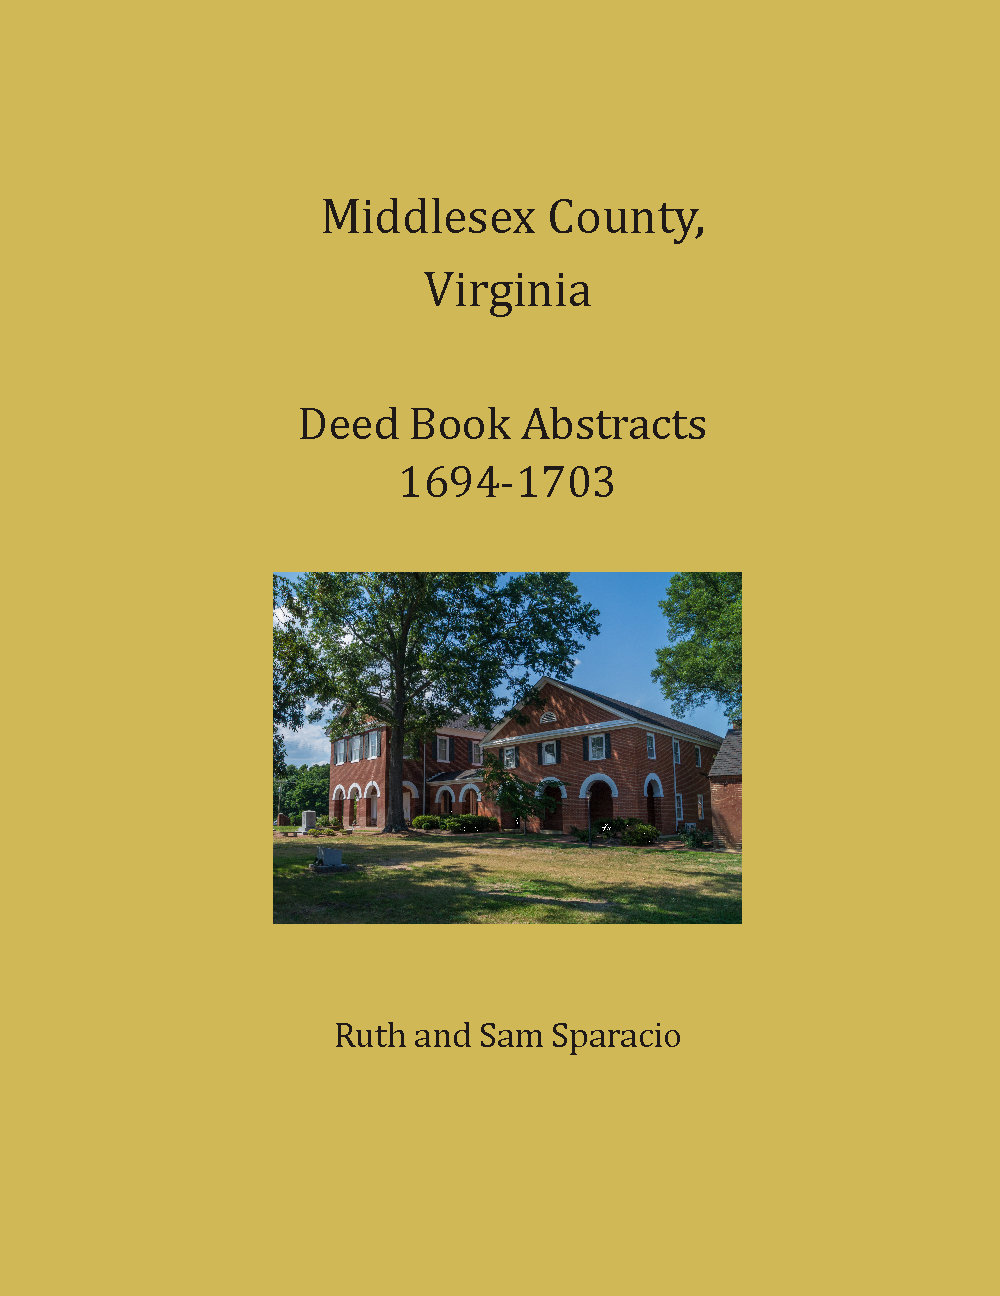 Middlesex County Virginia Deed Book 1694-1703